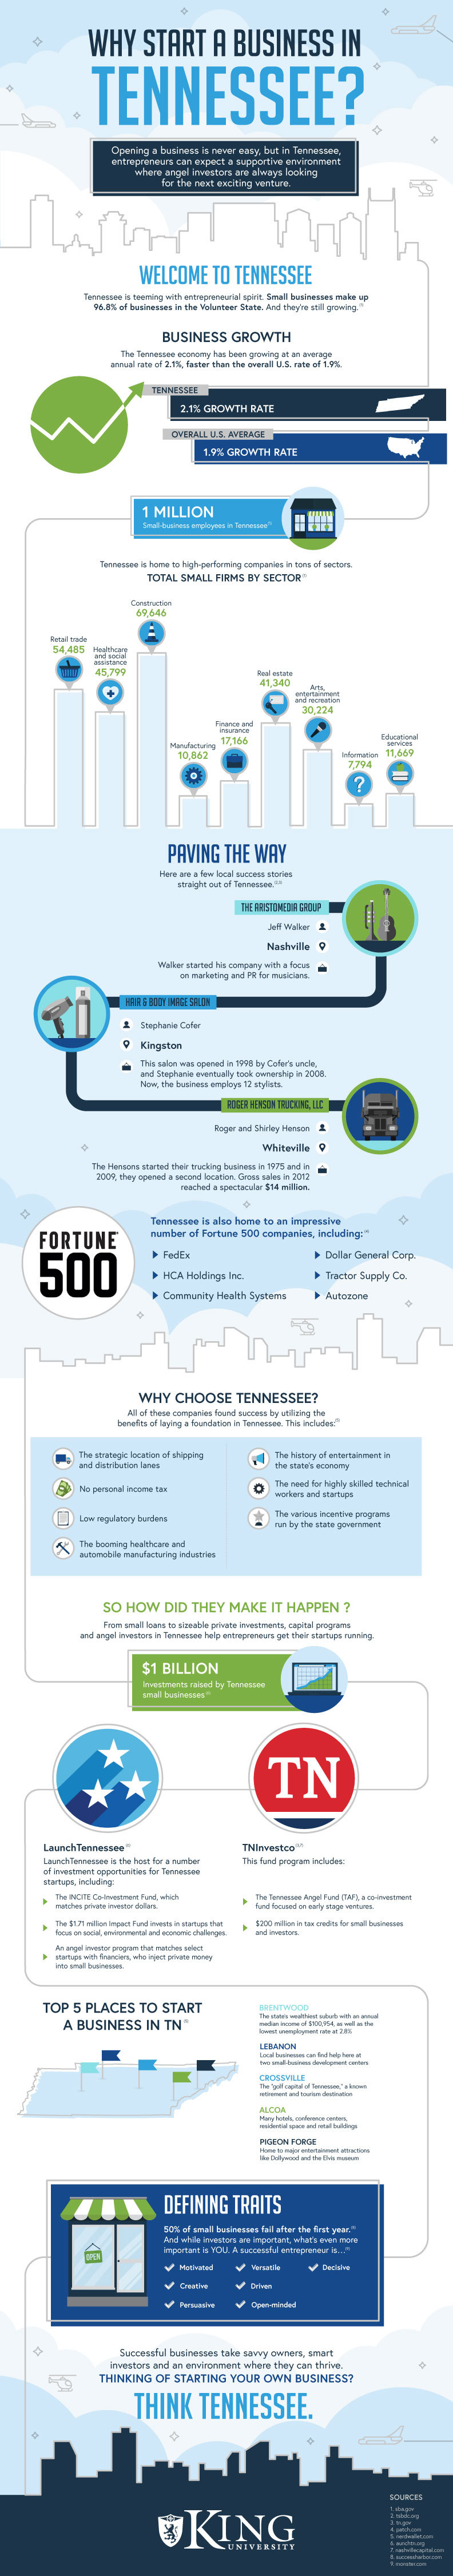 Why Start a Business in Tennessee Infographic